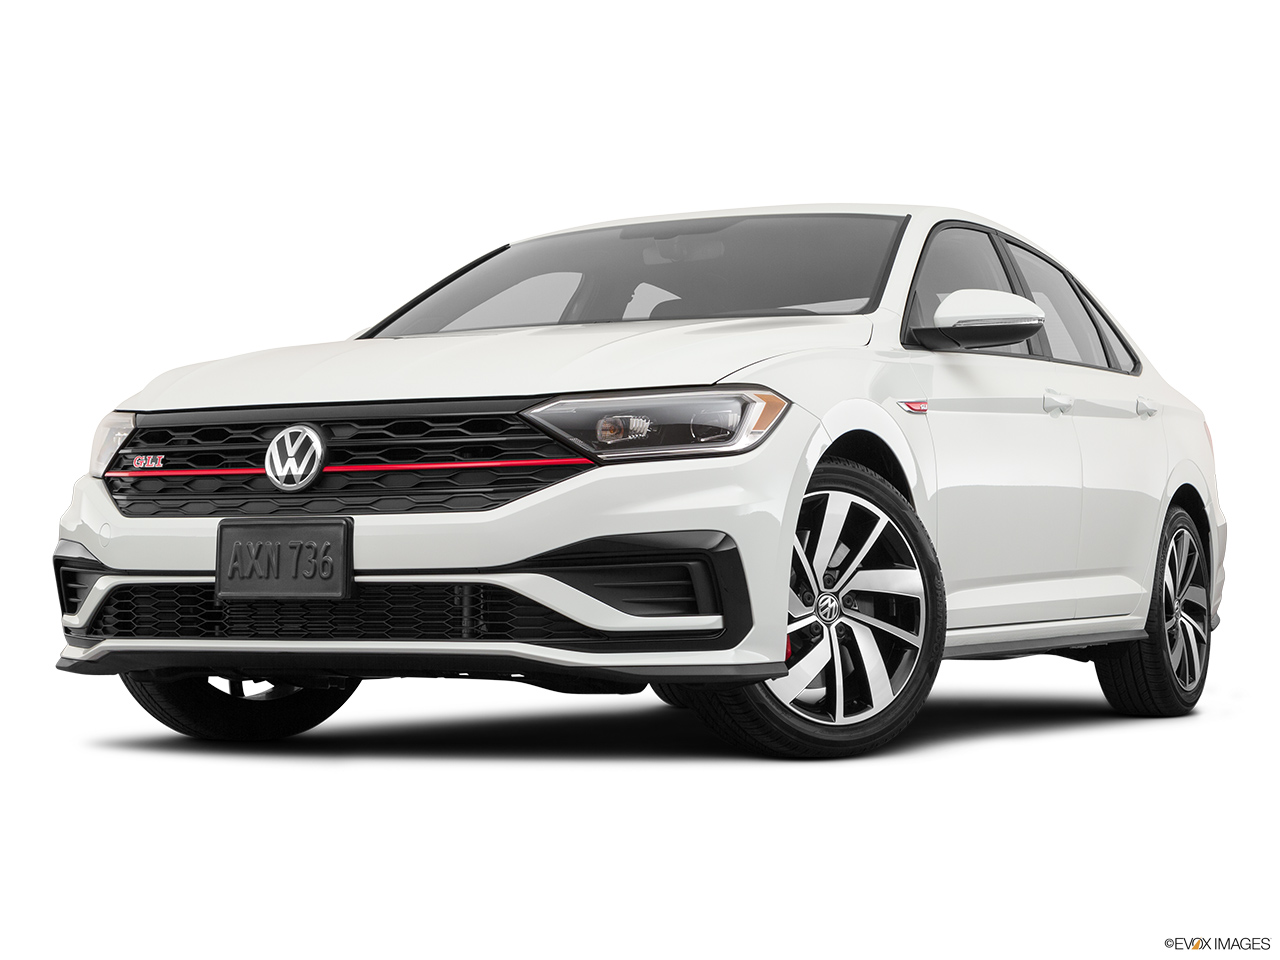 2019 Volkswagen Jetta GLI S Front angle view, low wide perspective.